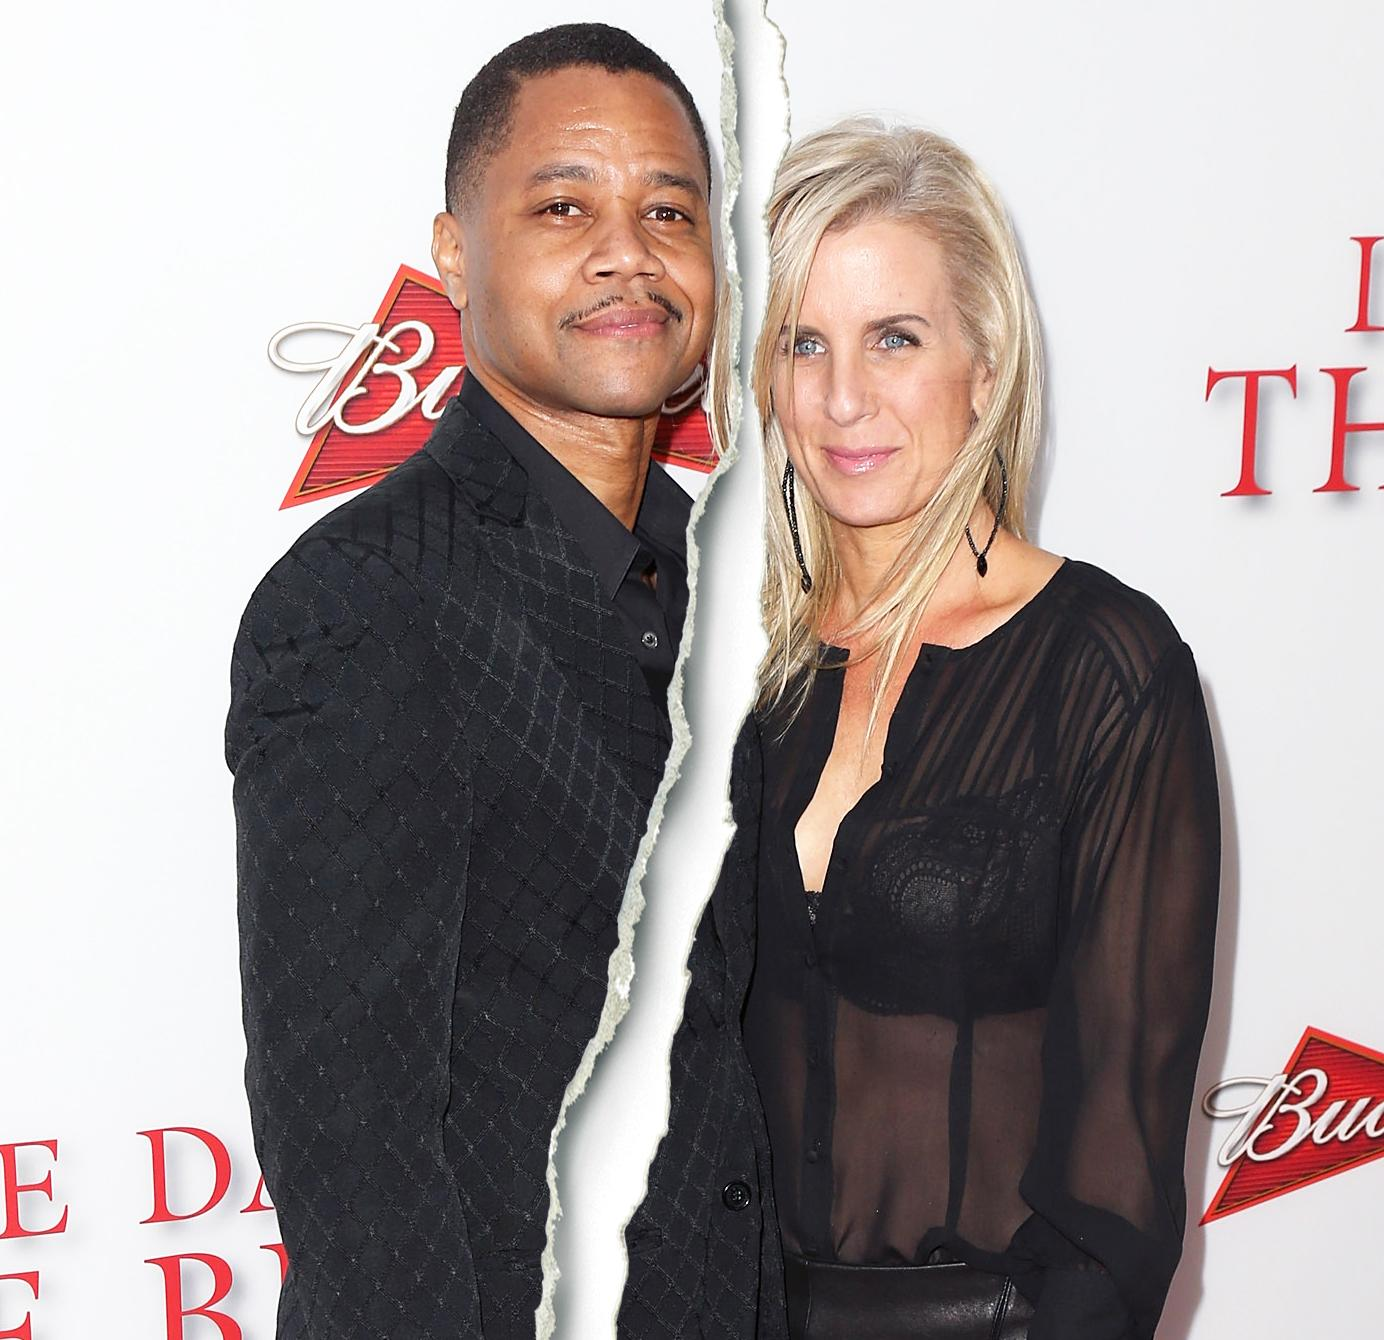 Cuba Gooding Jr. Files for Divorce From Wife Sara Kapfer After 22 Years of Marriage: Report